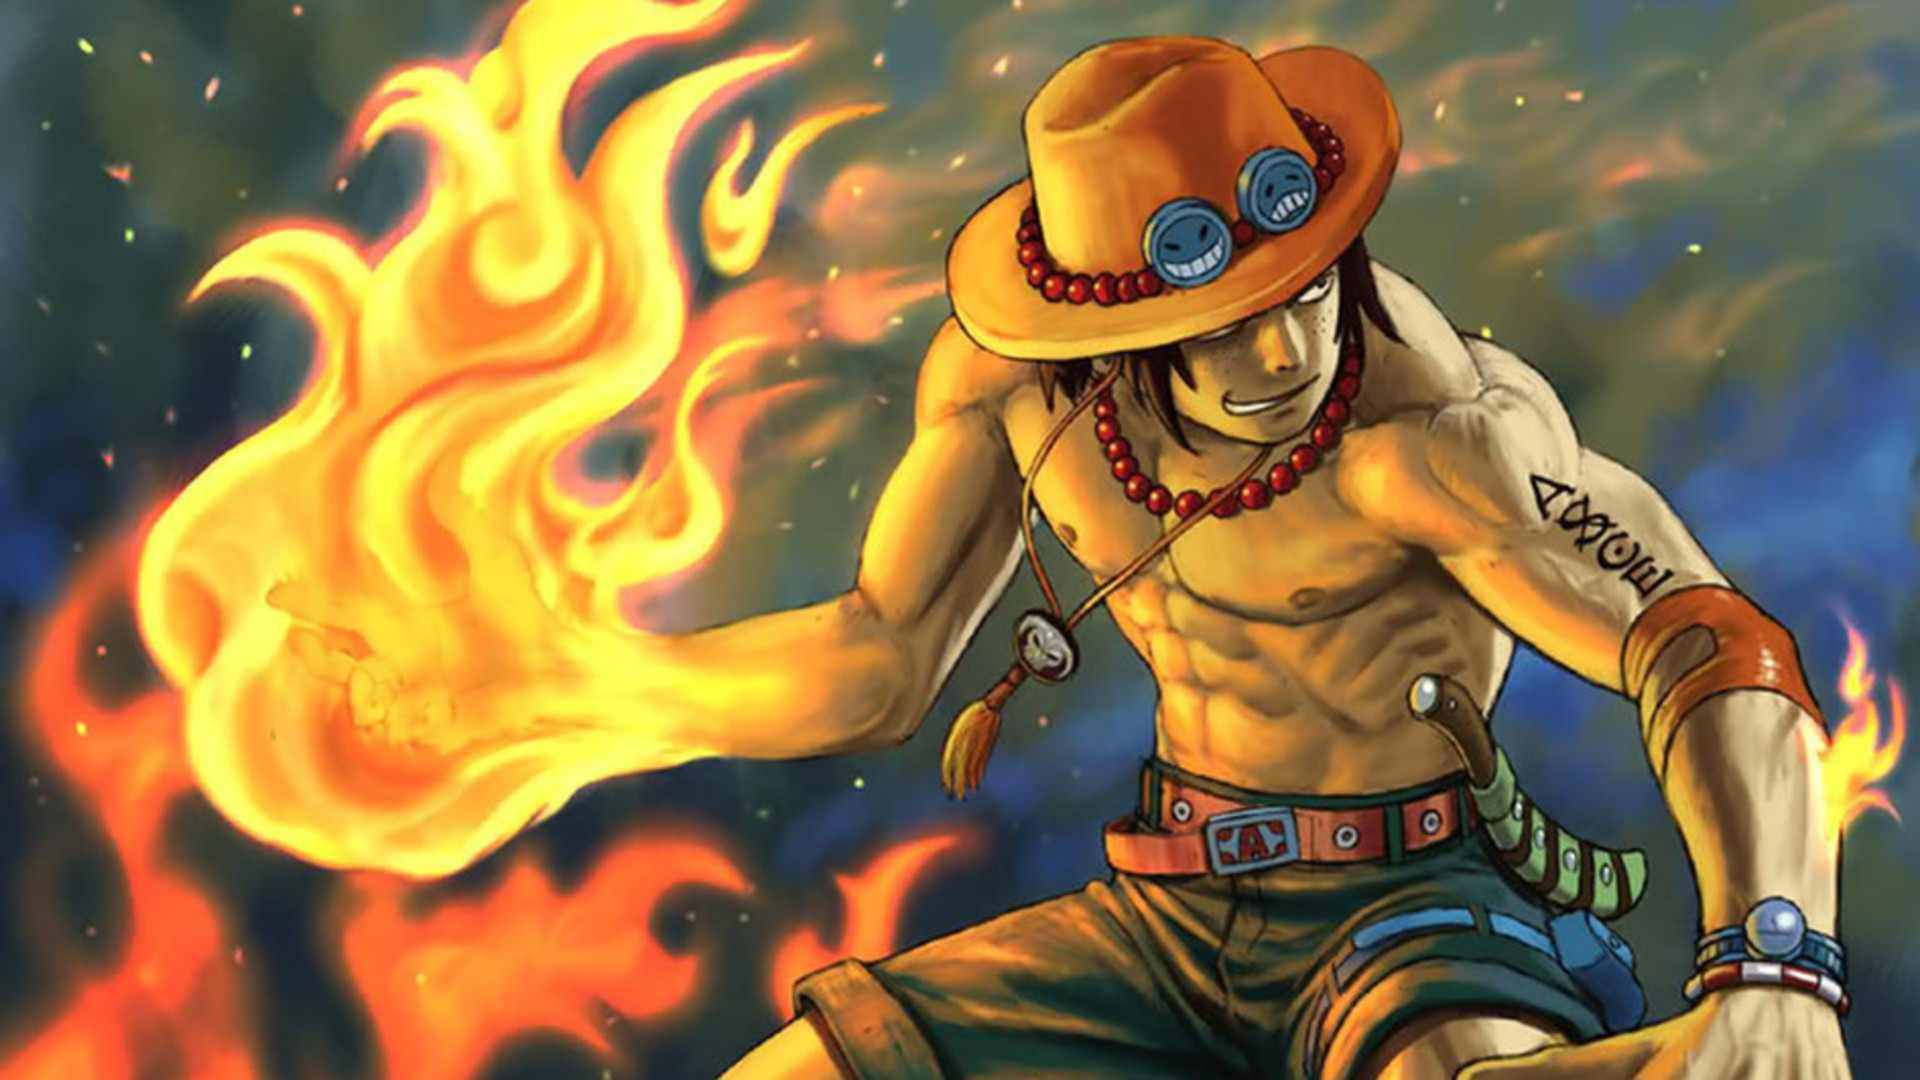 Ace One Piece Wallpaper